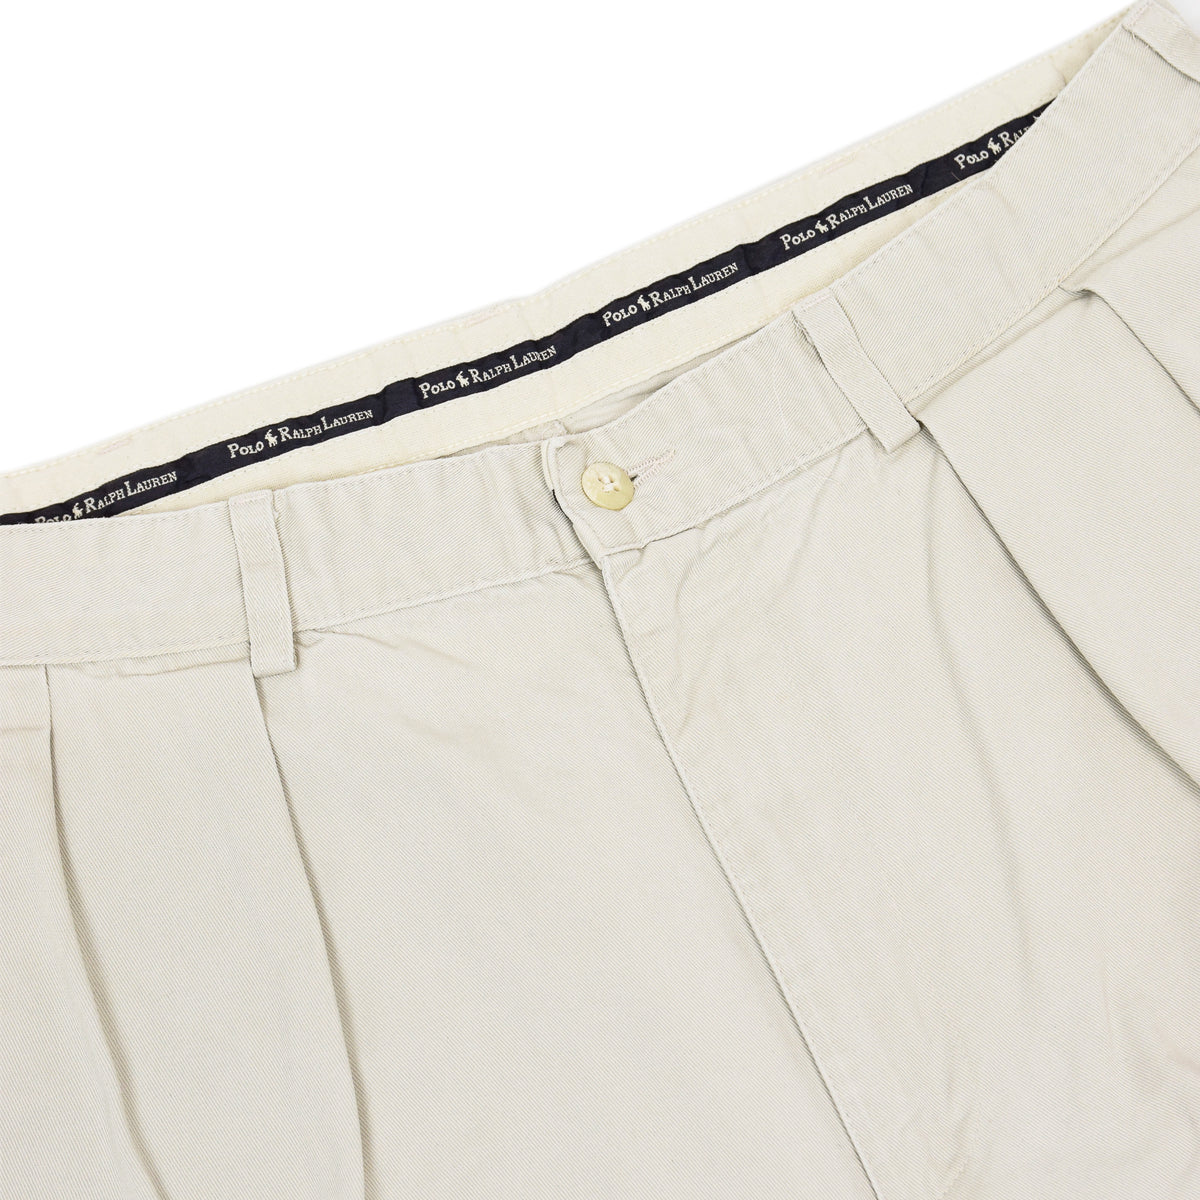 Vintage 80s Polo Ralph Lauren Cotton Double Pleated Front Chino Shorts 34 W waistband